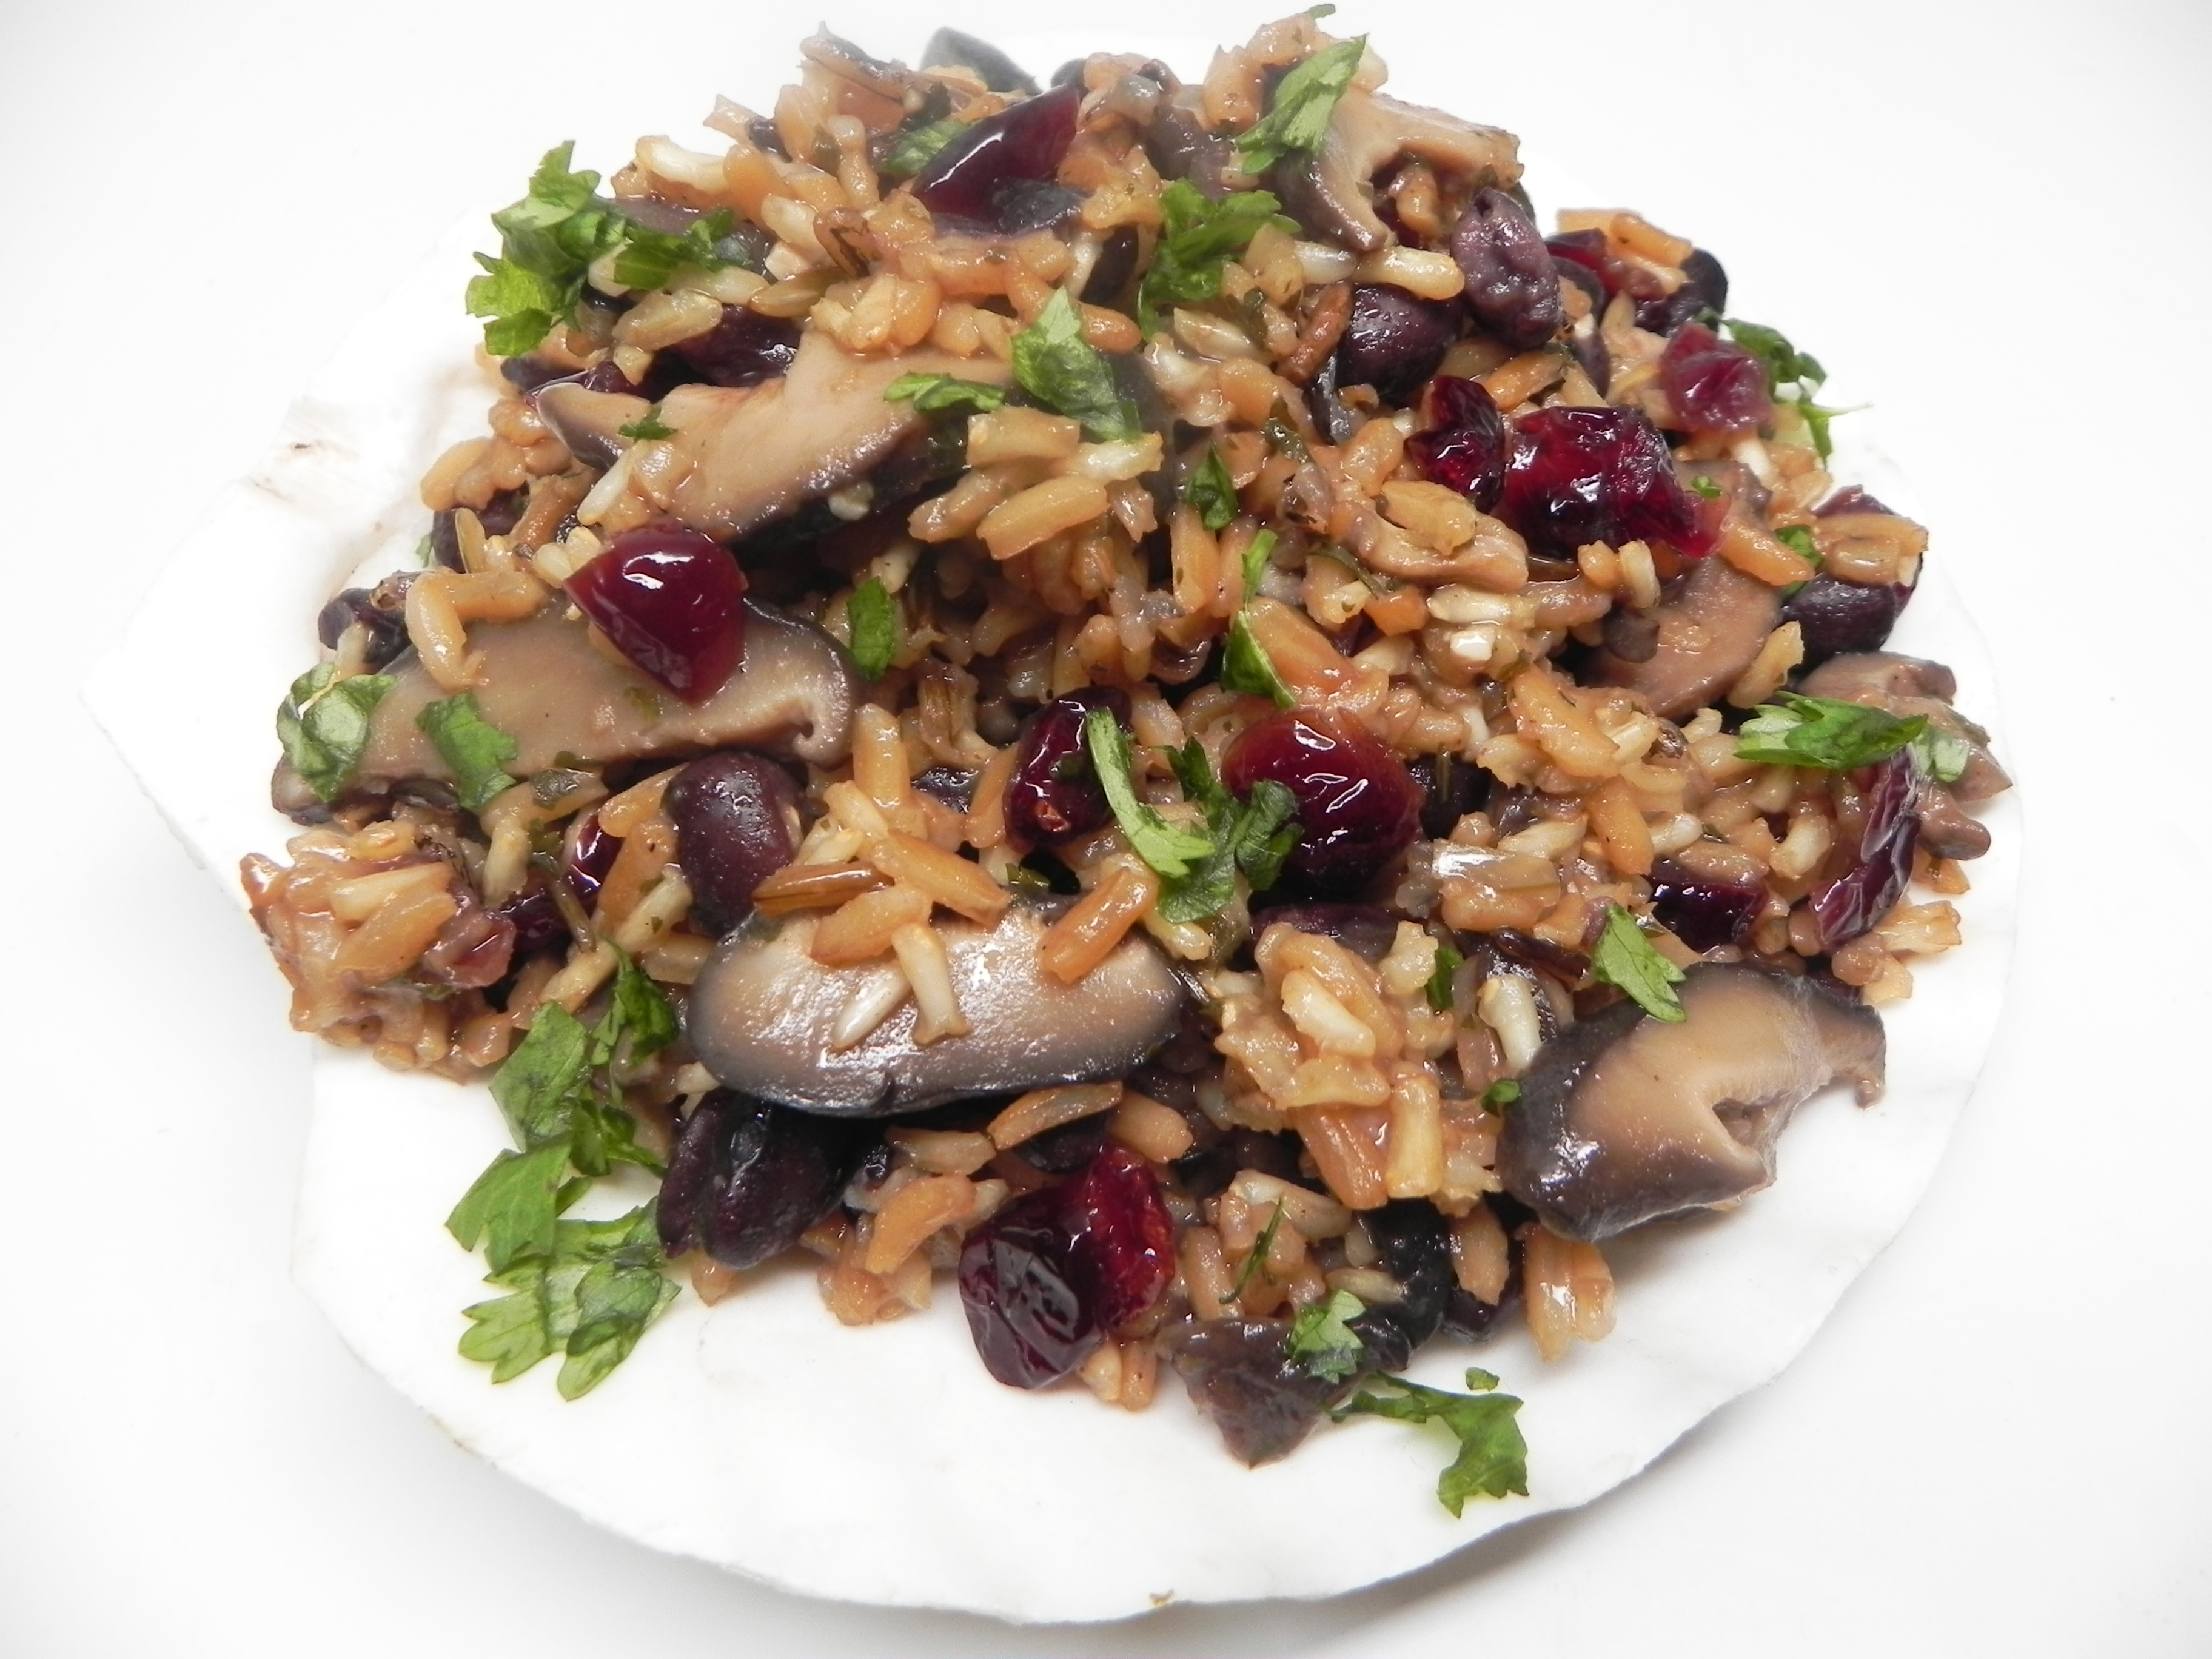 Brown and Wild Rice Medley with Black Beans